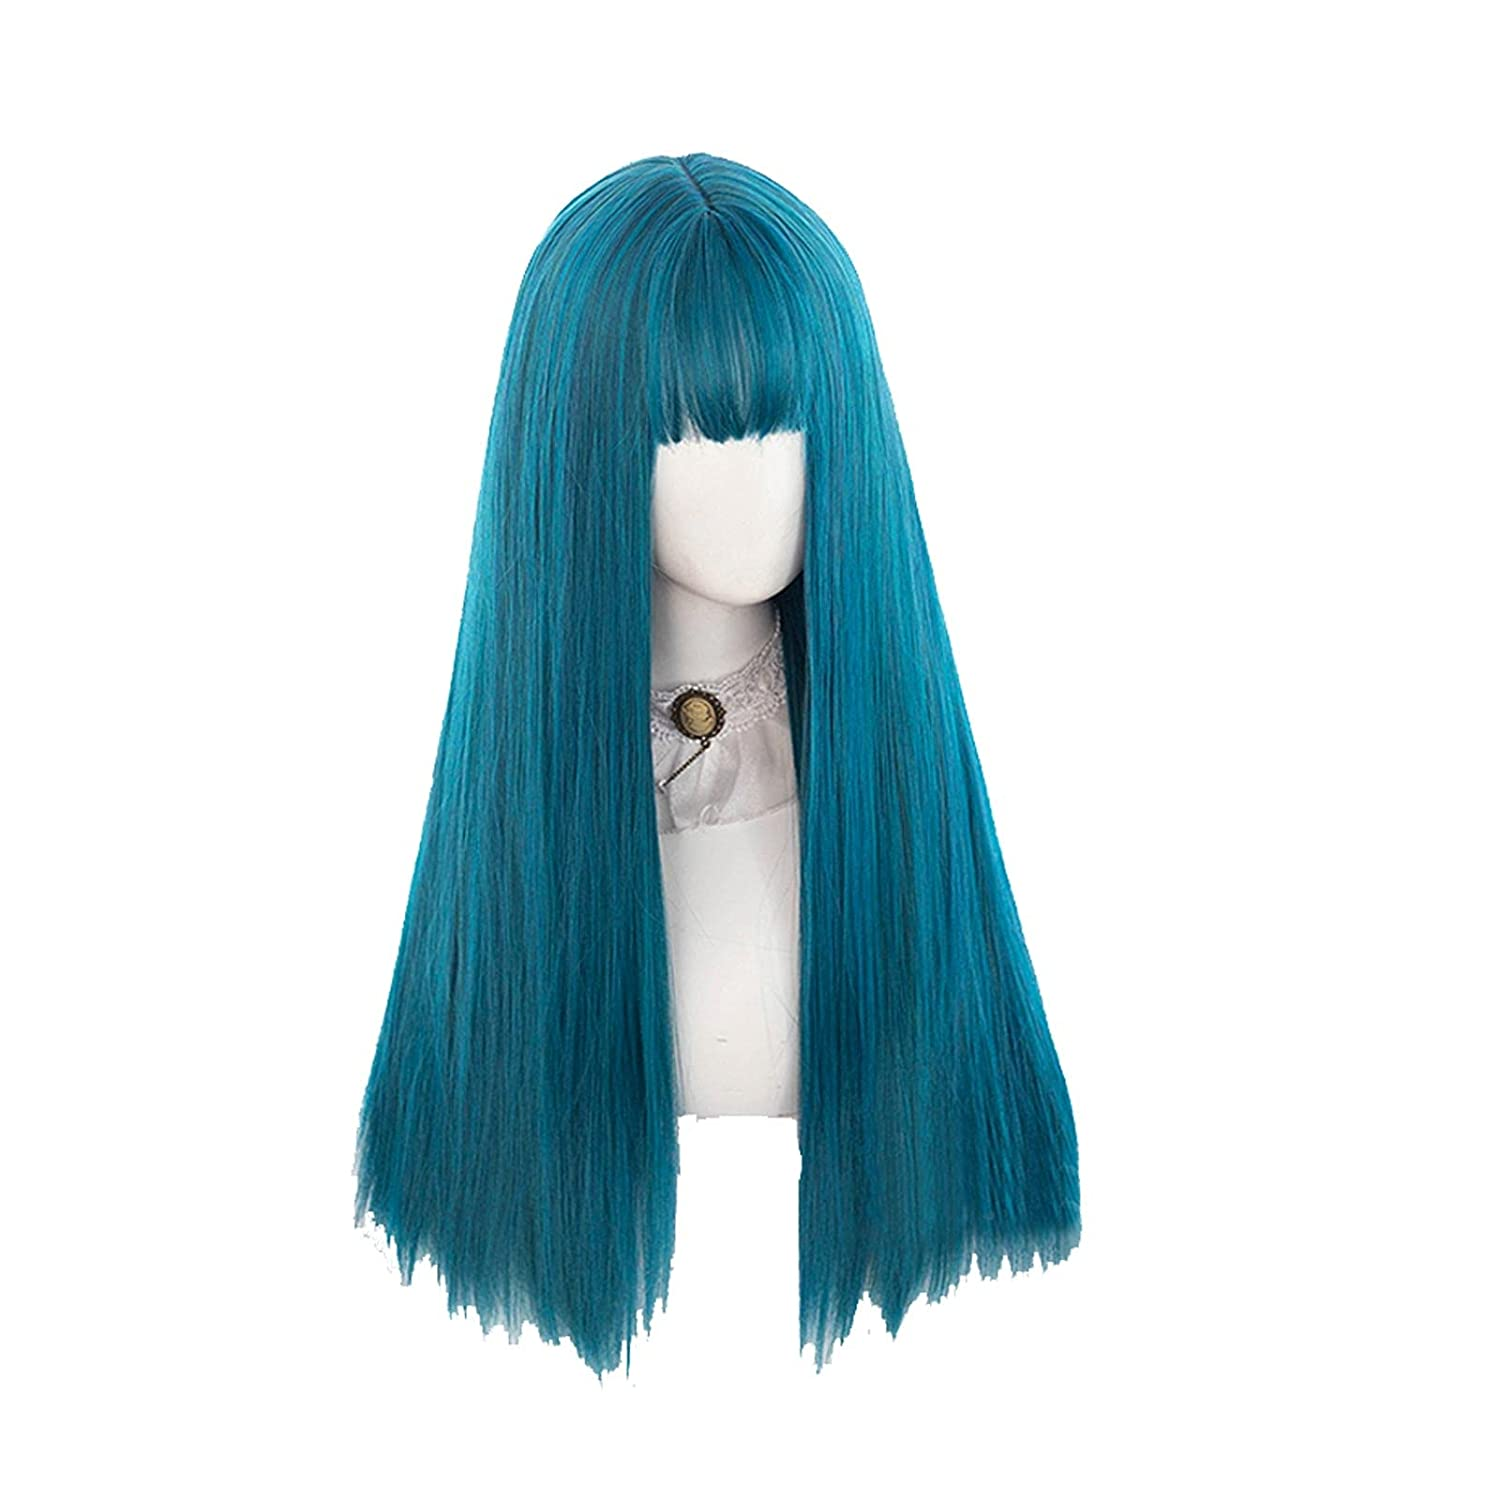 wigs Louisville-Jefferson County Mall 23.6inches Cosplay Wig Long Synth Bangs Lady Austin Mall Party Straight